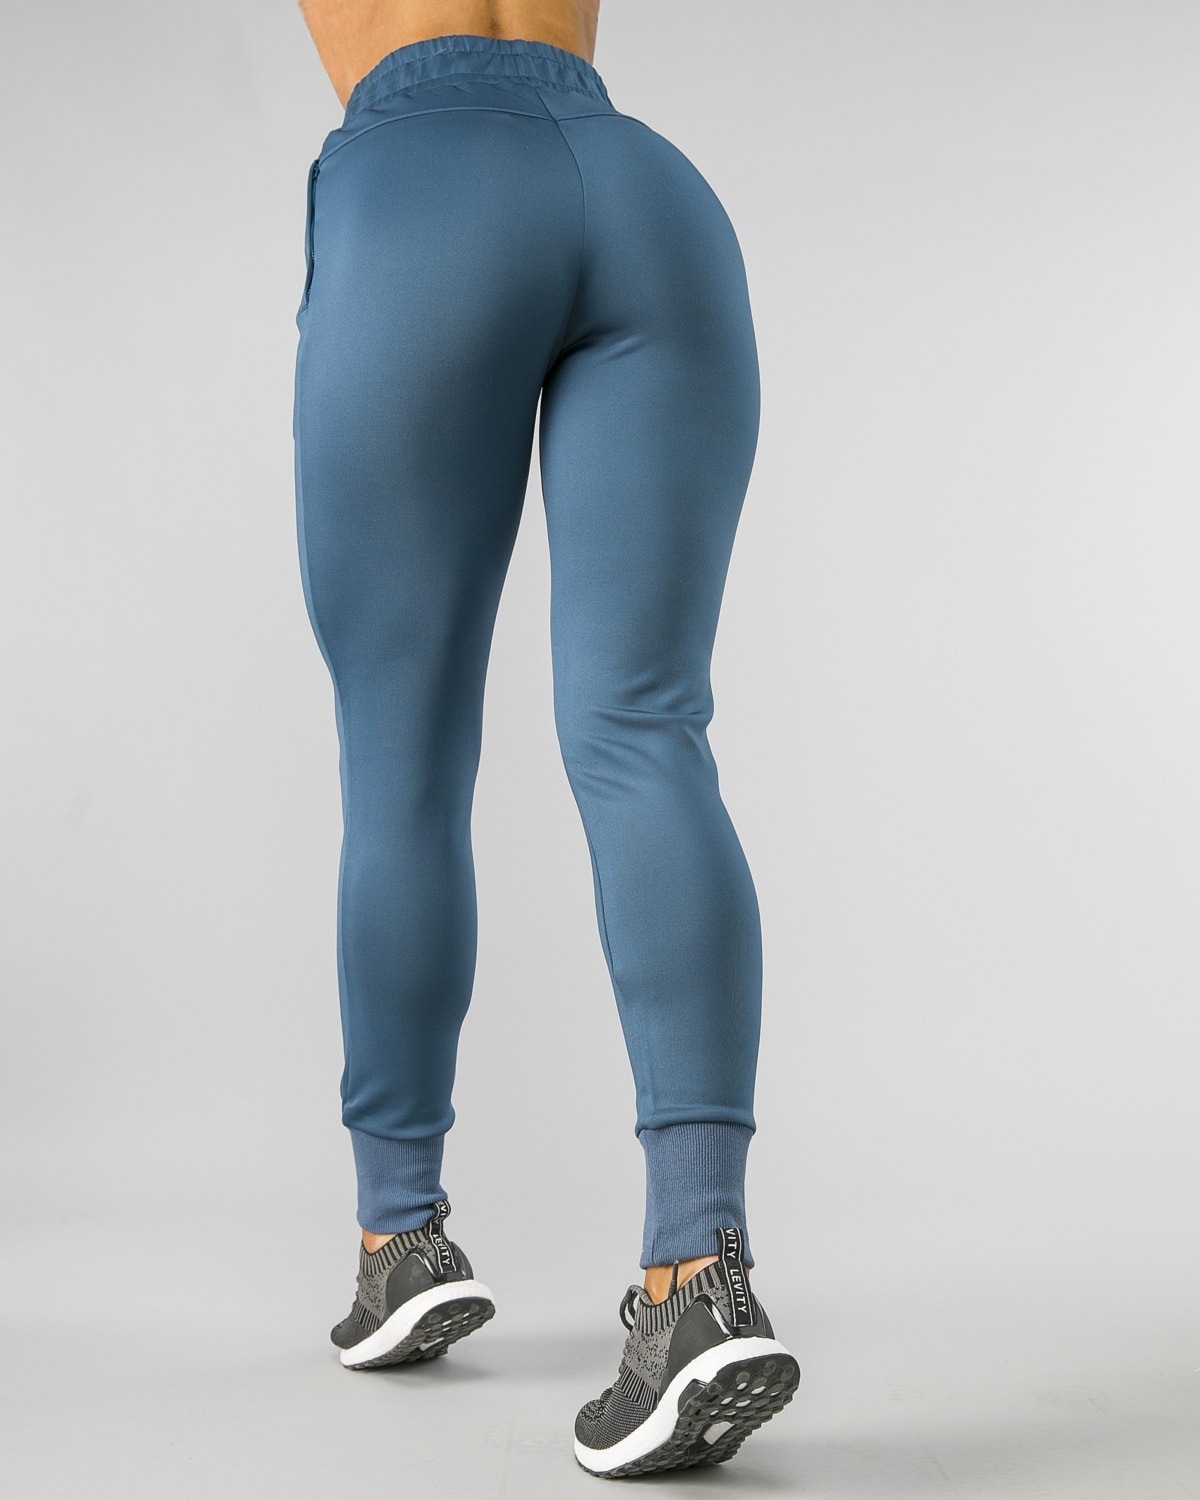 Squat Wolf Knot Joggers Teal 19